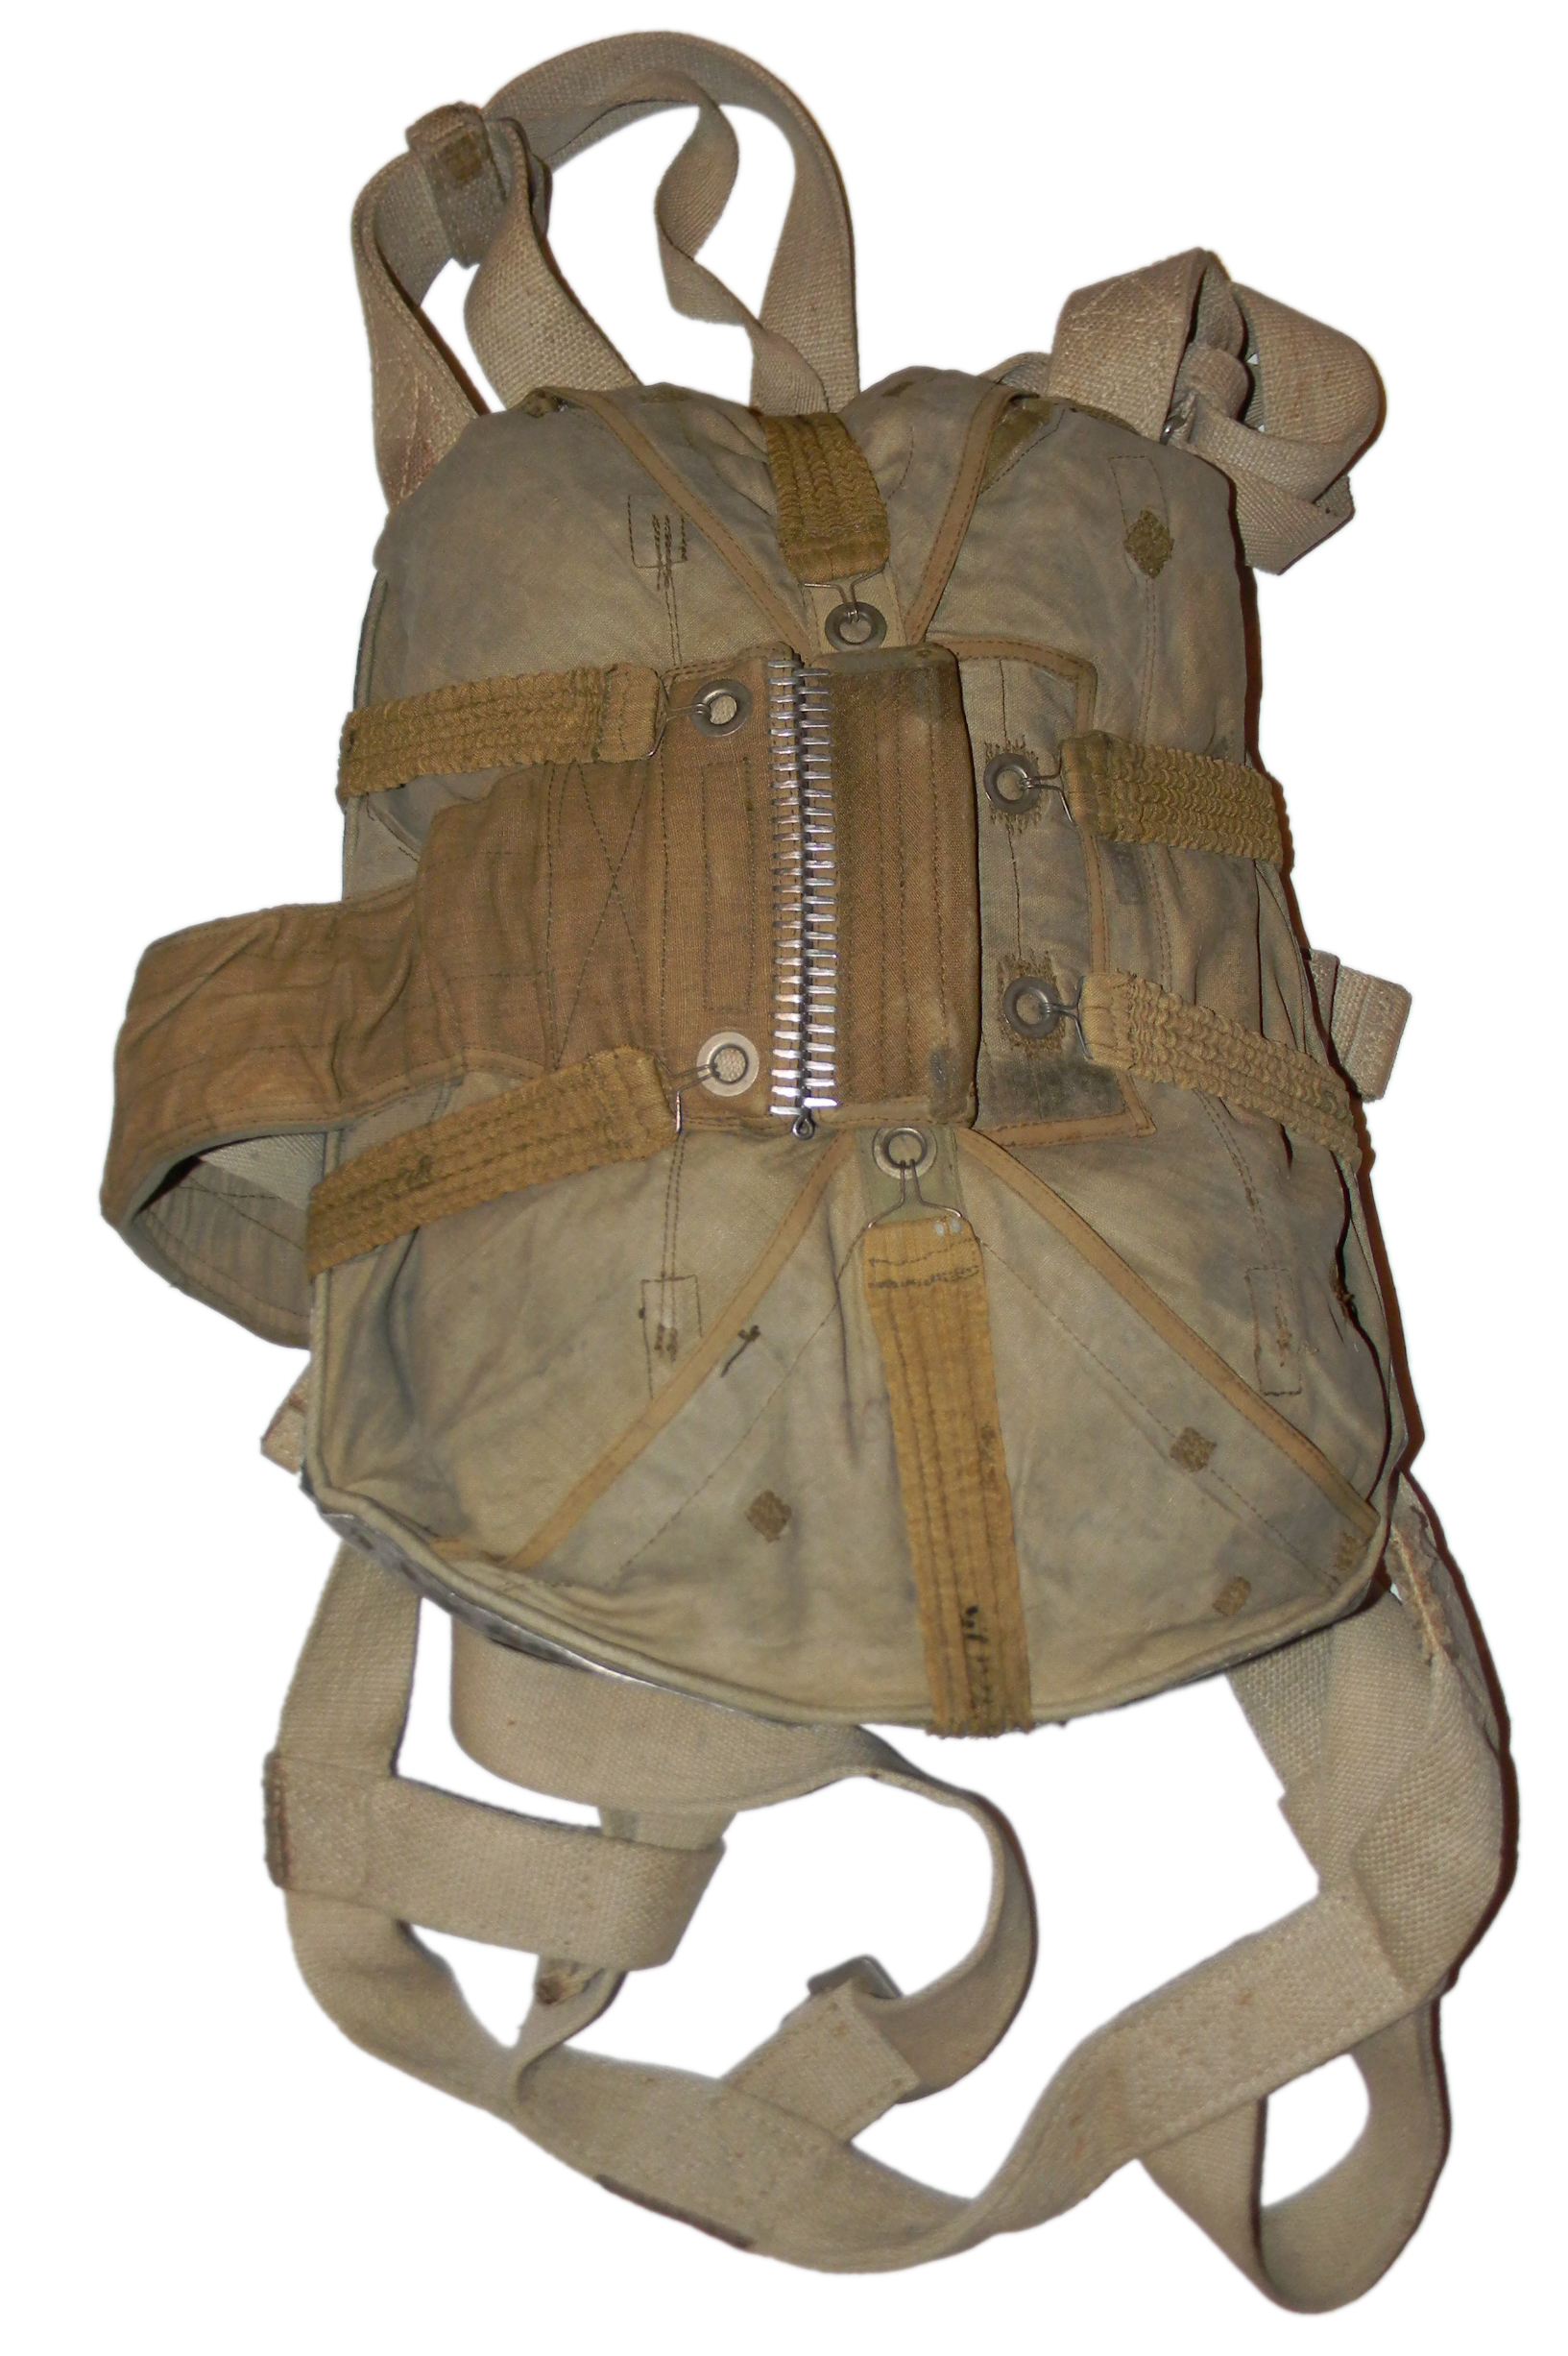 LW back pack parachute + bag